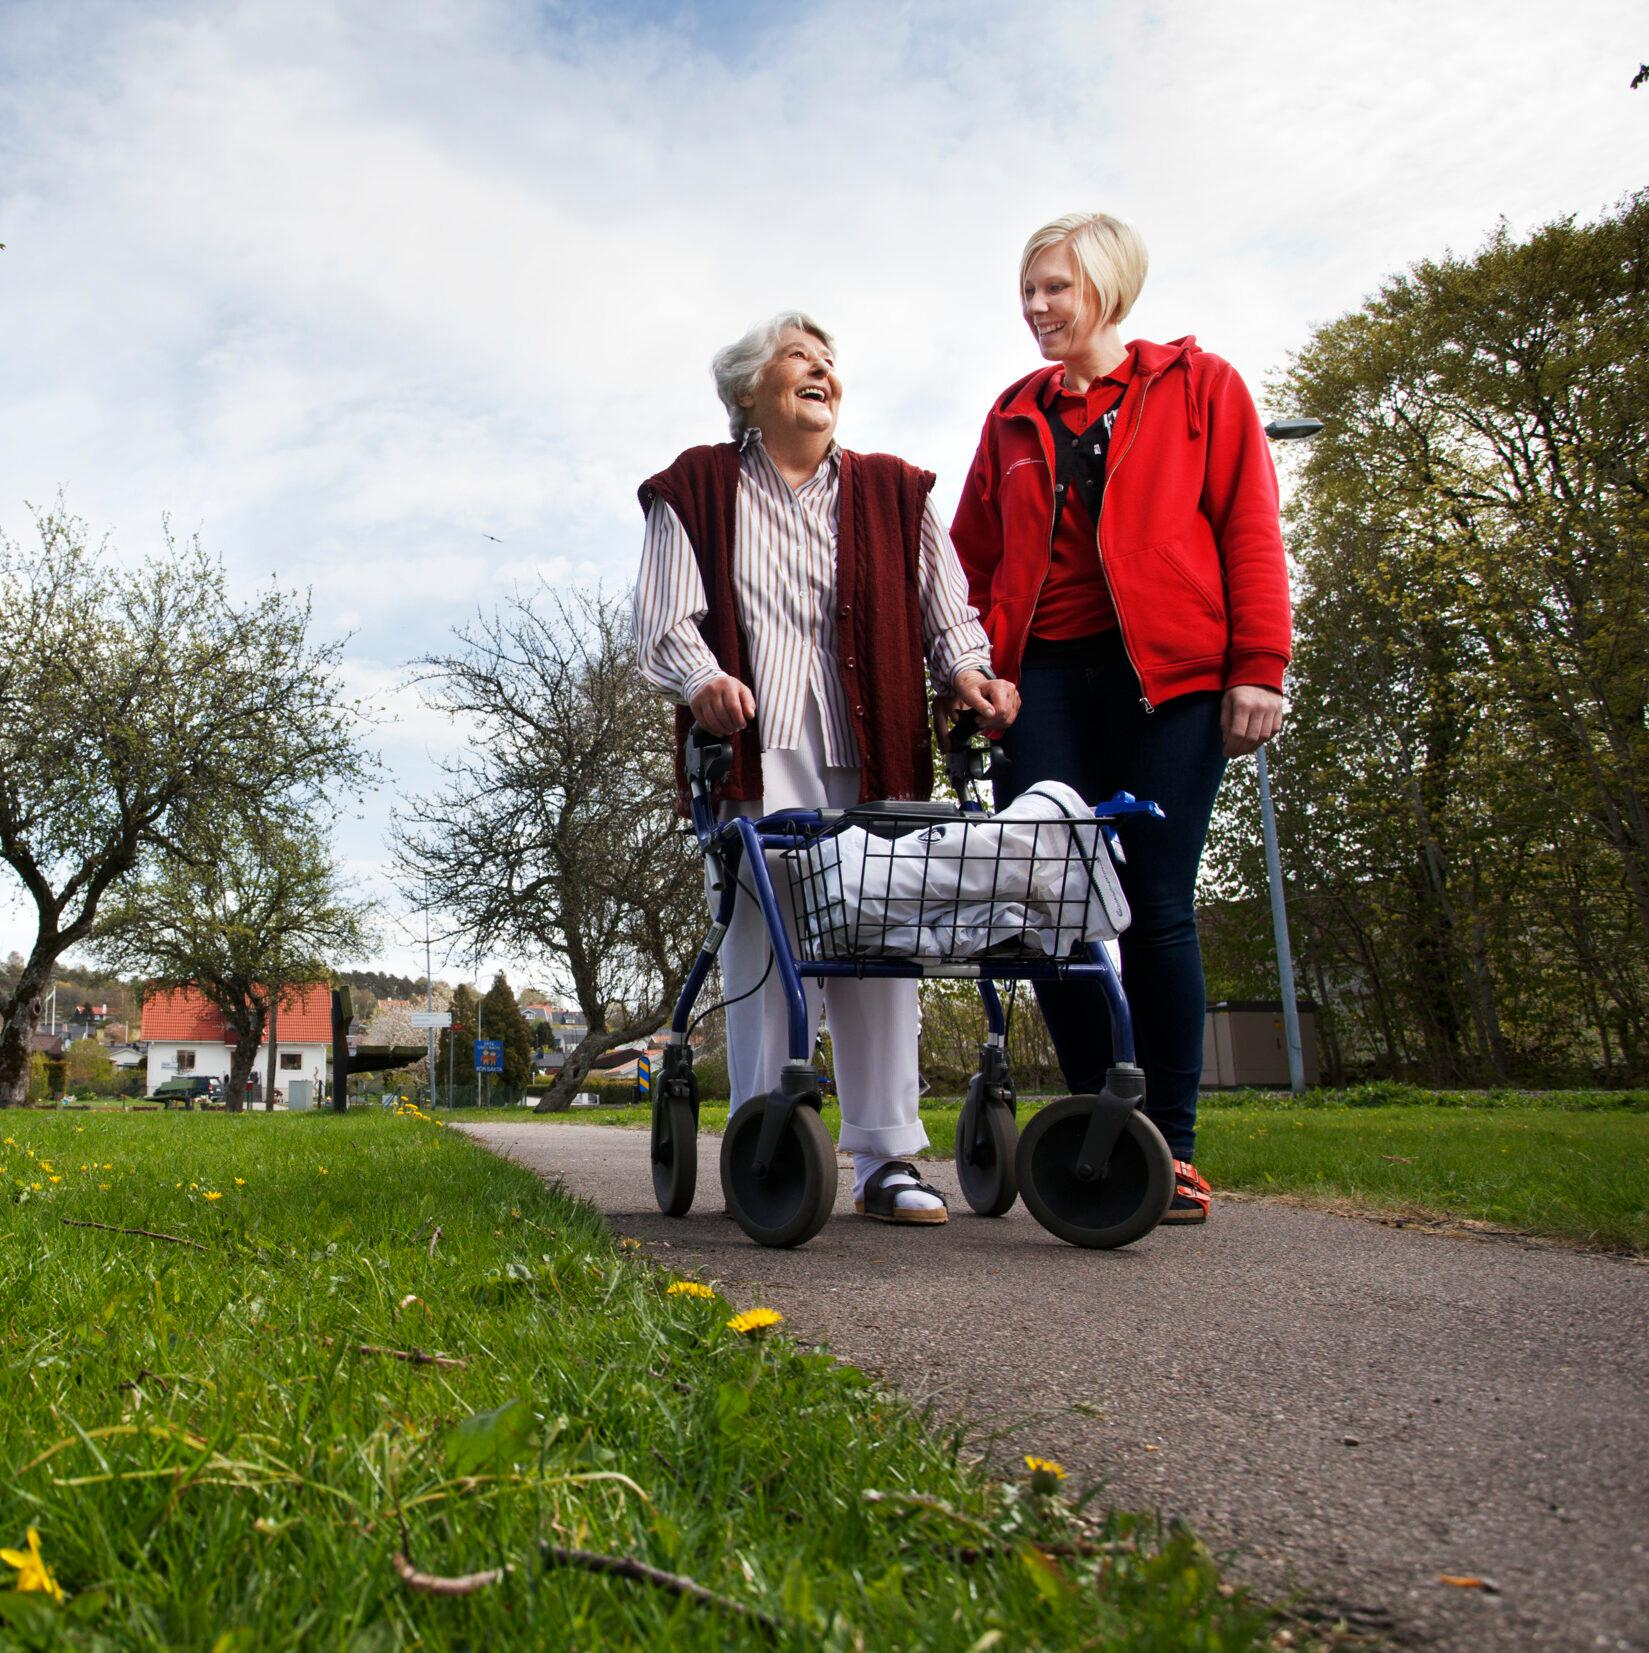 An elderly woman in a park walking with a walking frame together with a younger woman.